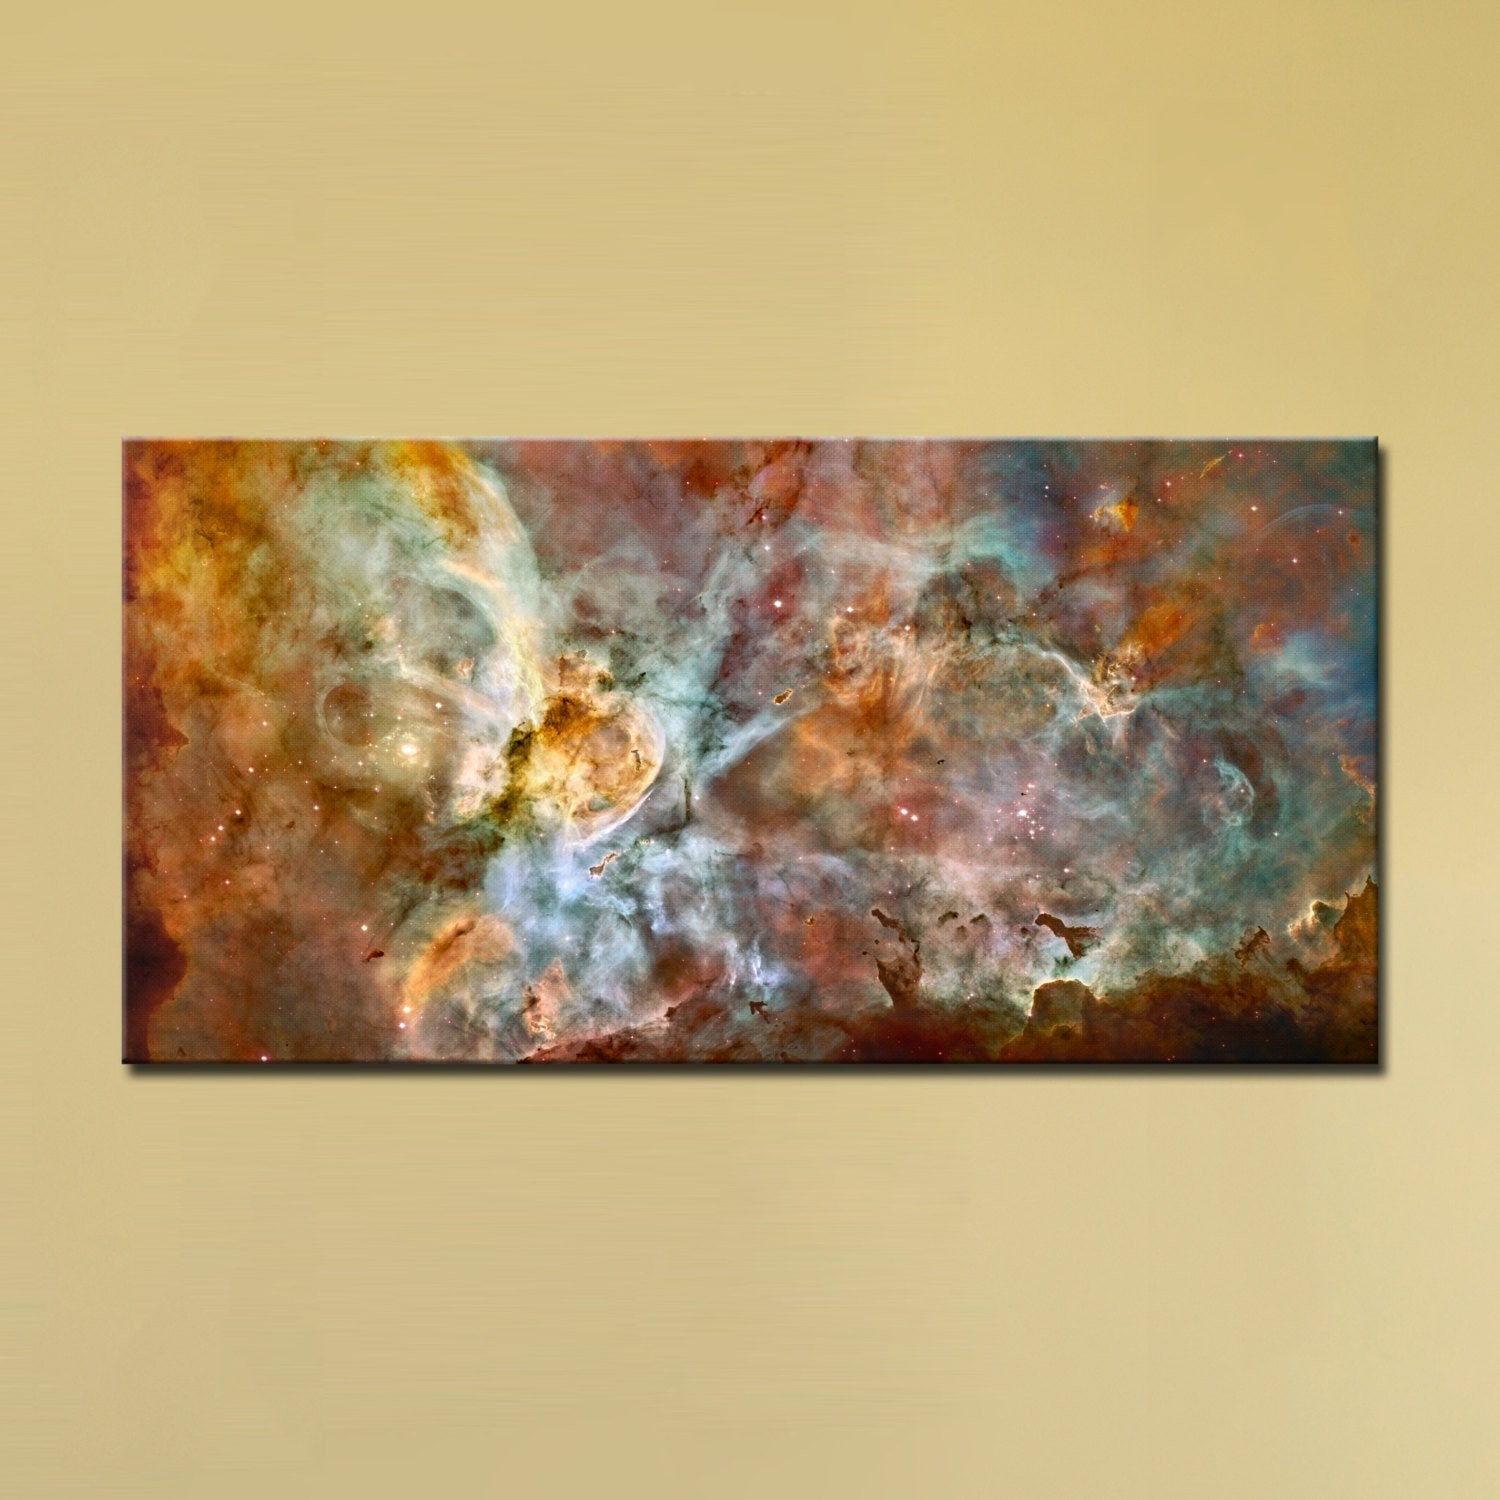 The Carina Nebula, Star Birth in the Extreme (Color) (24″ x 48″) – Canvas Wrap Print